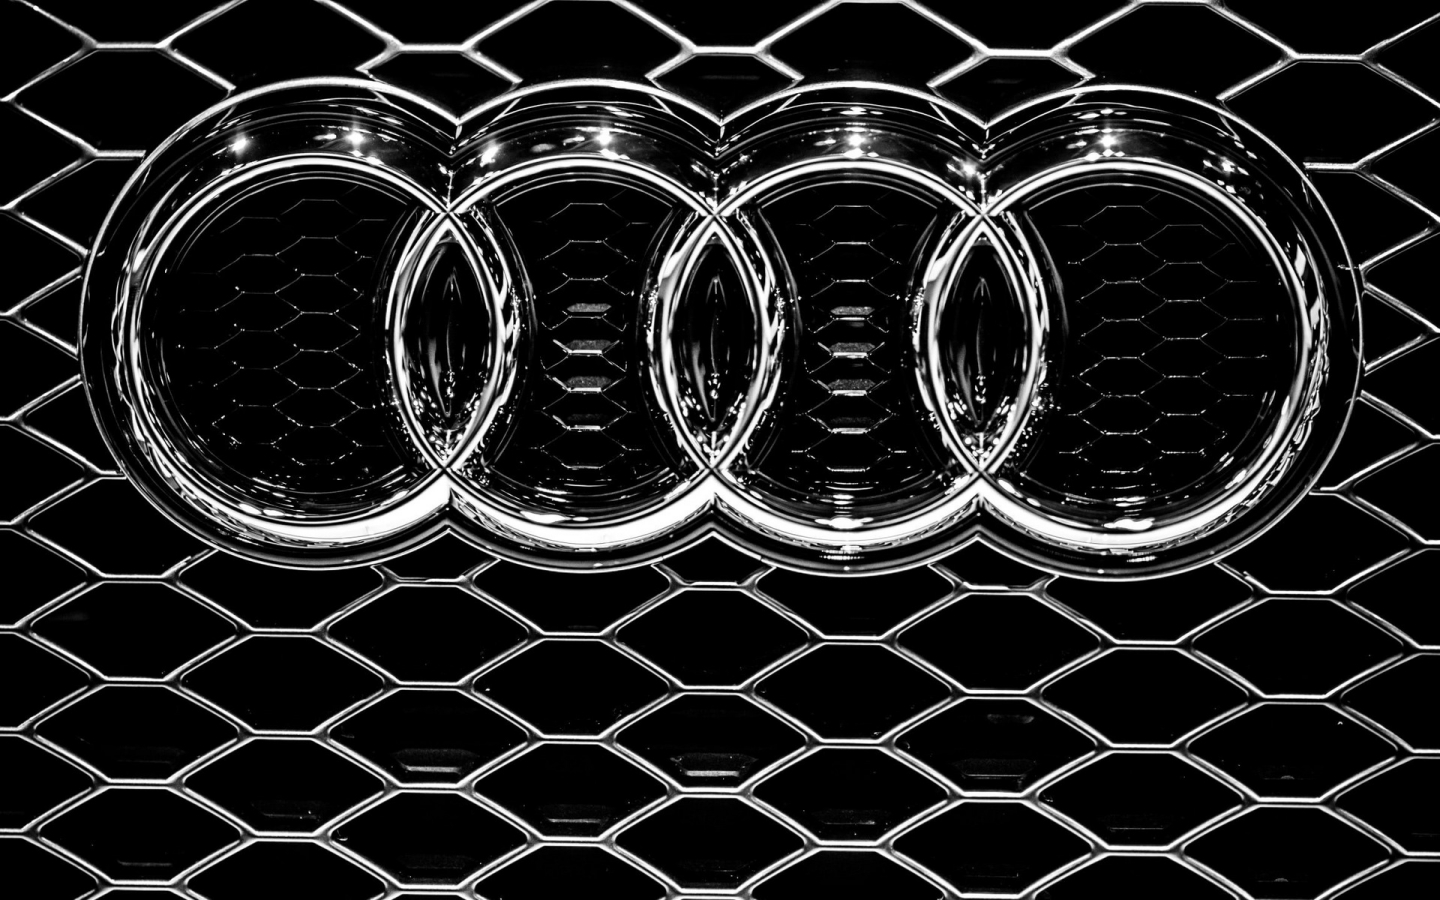 Audi Grille for 1440 x 900 widescreen resolution